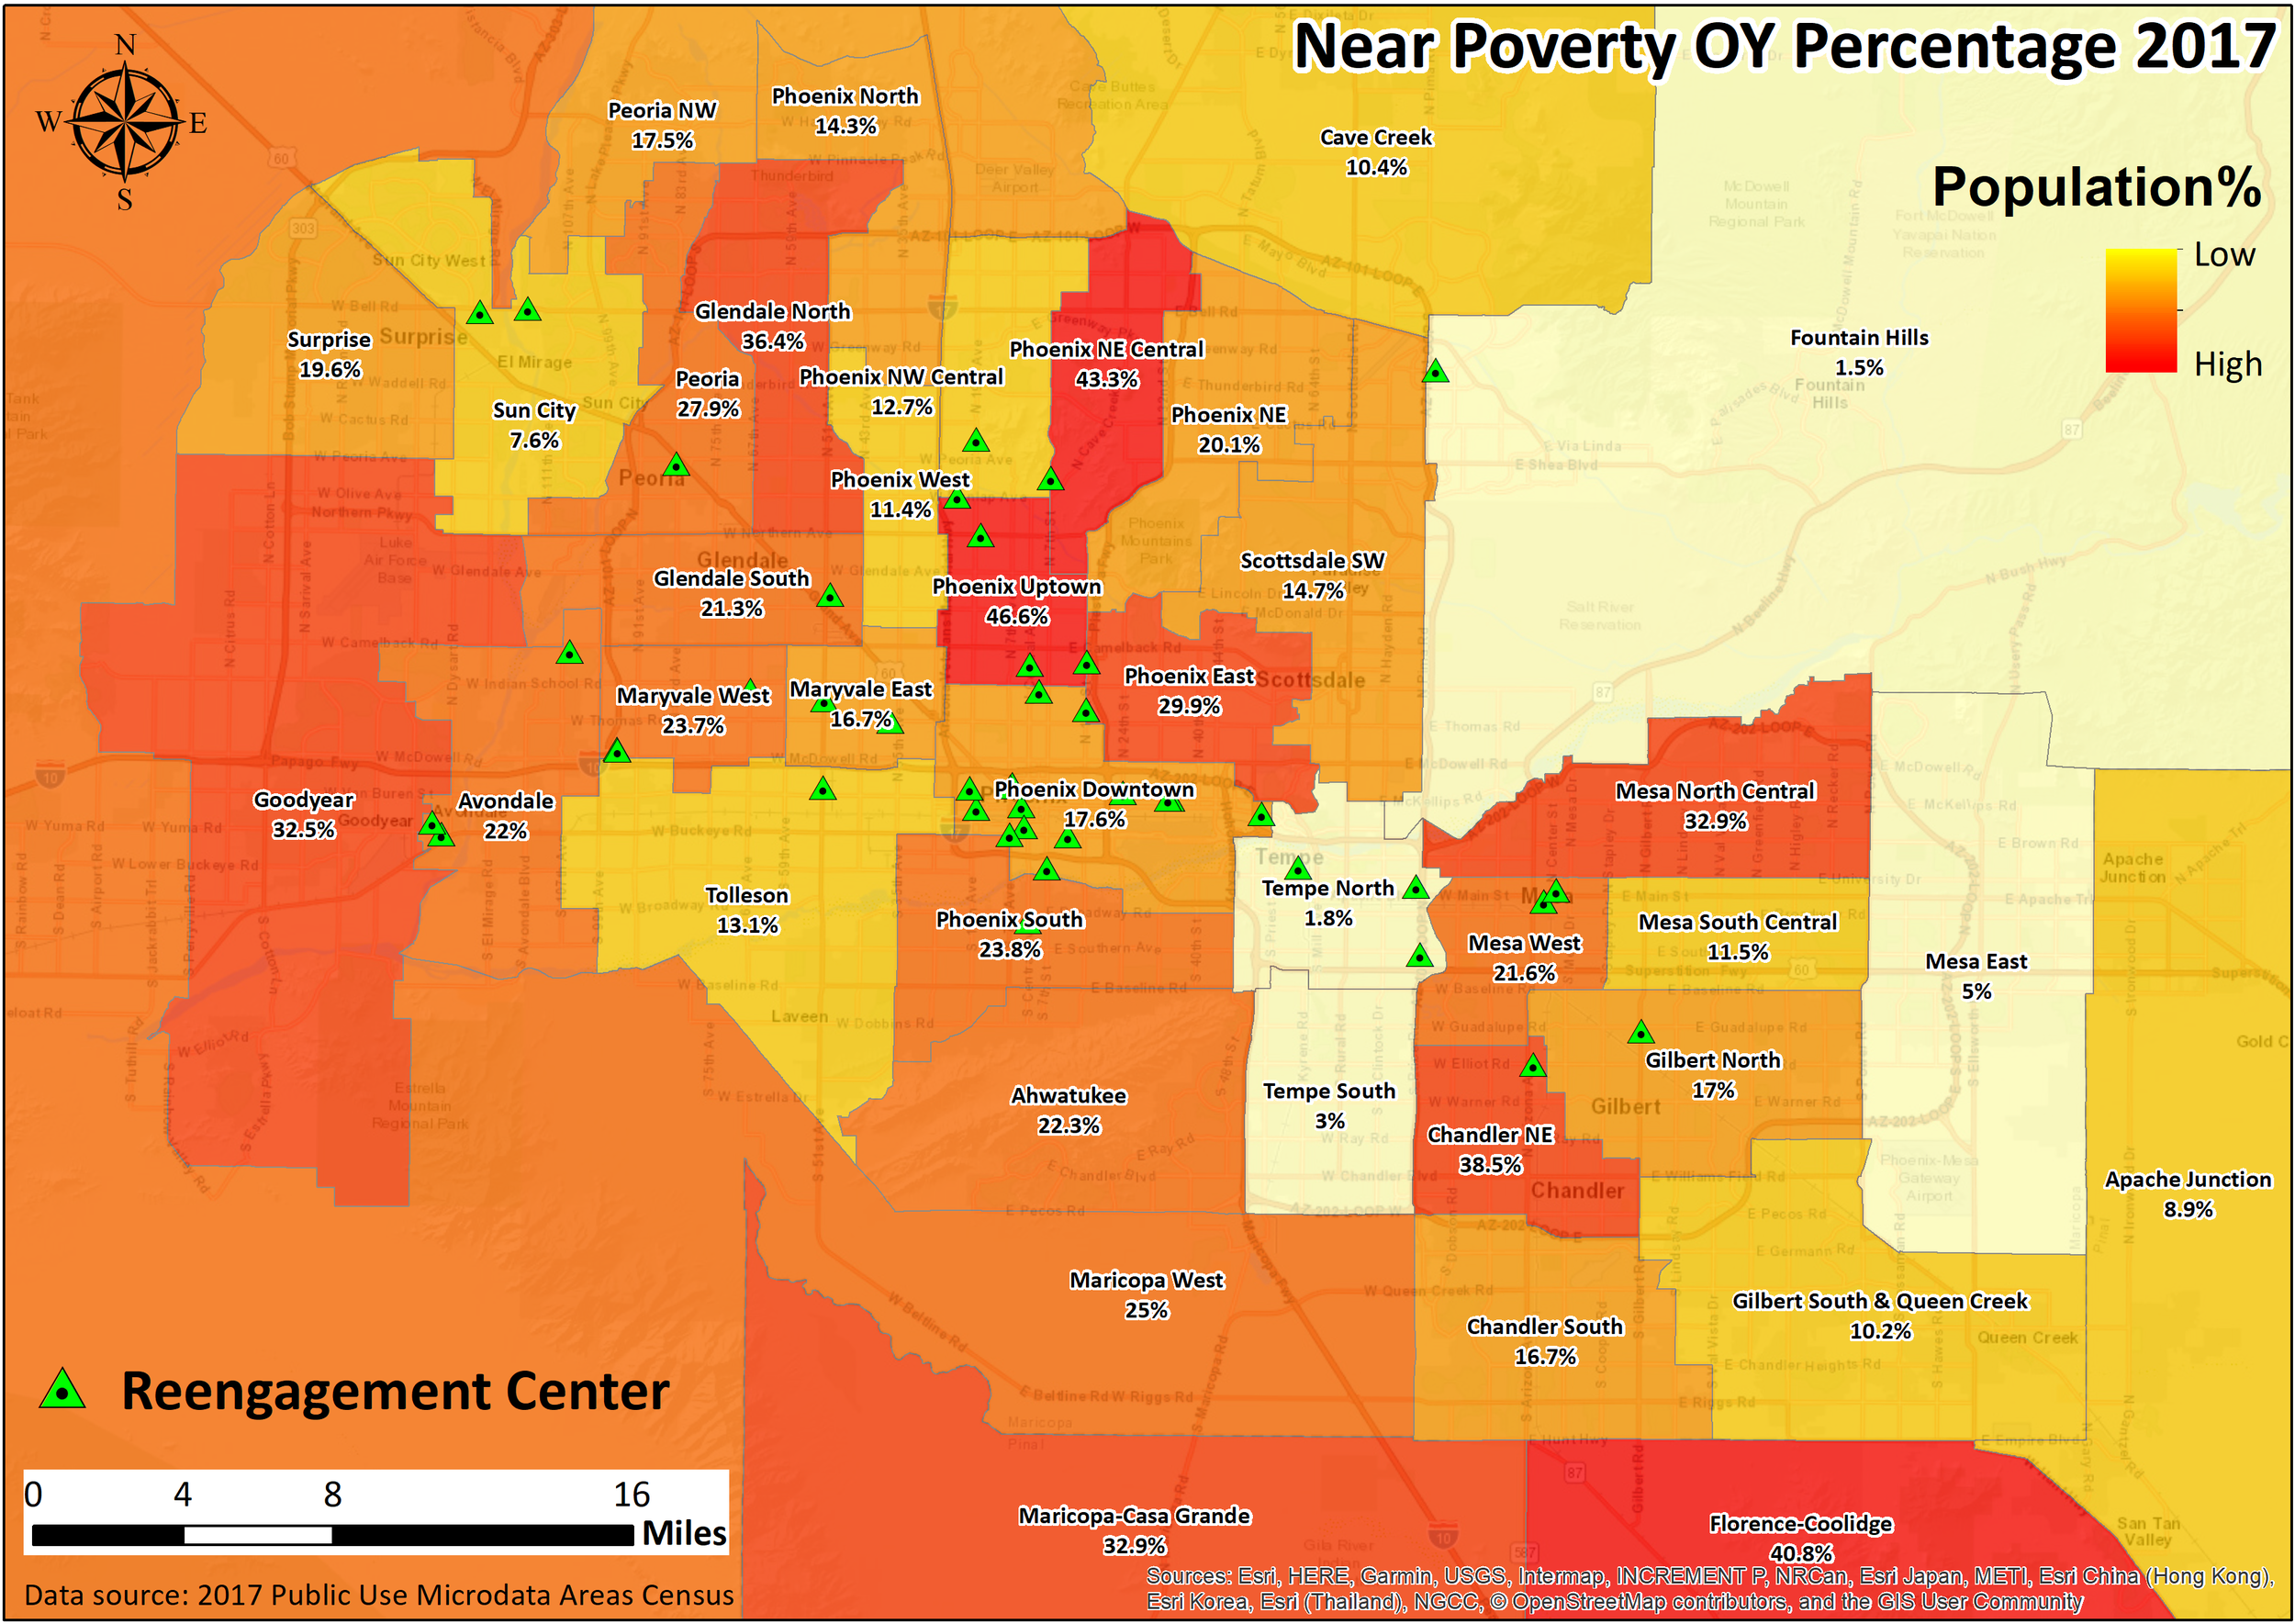 poverty%.png